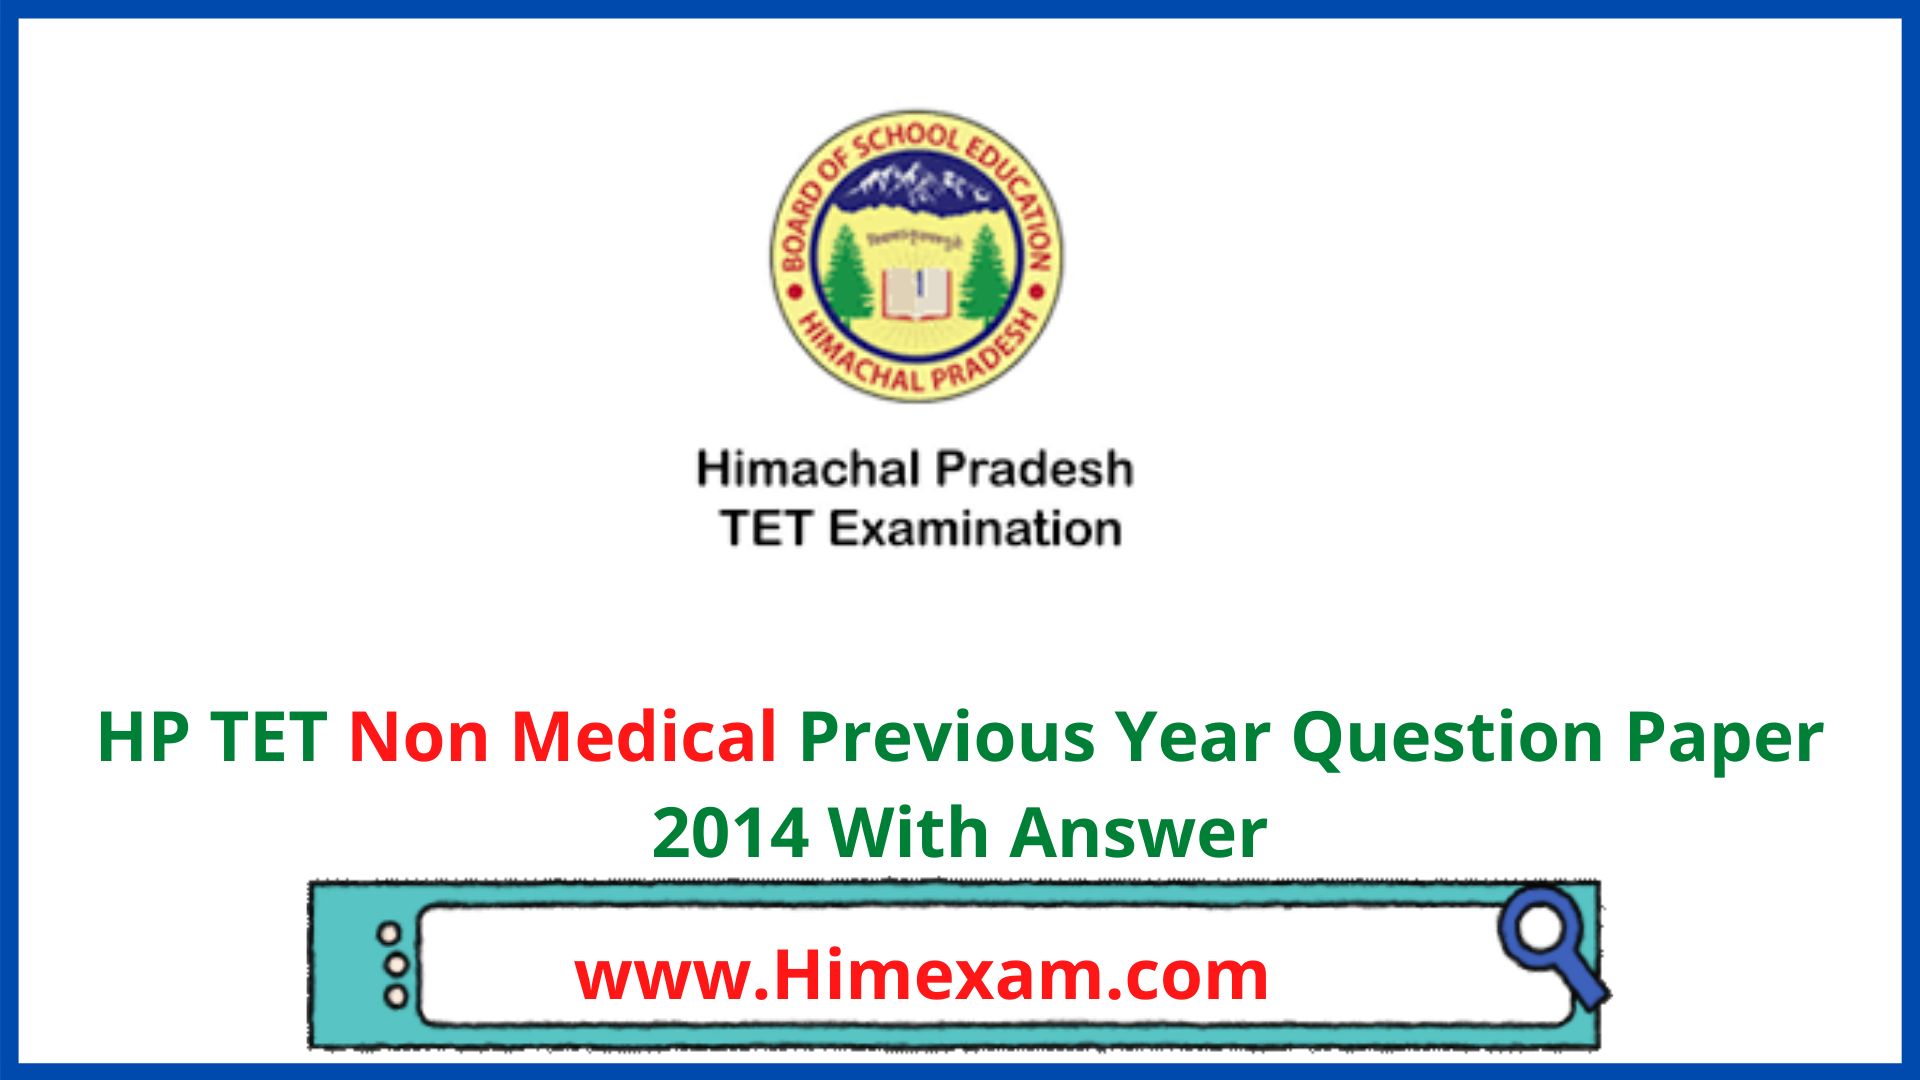 HP TET Non Medical Previous Year Question Paper 2014 With Answer